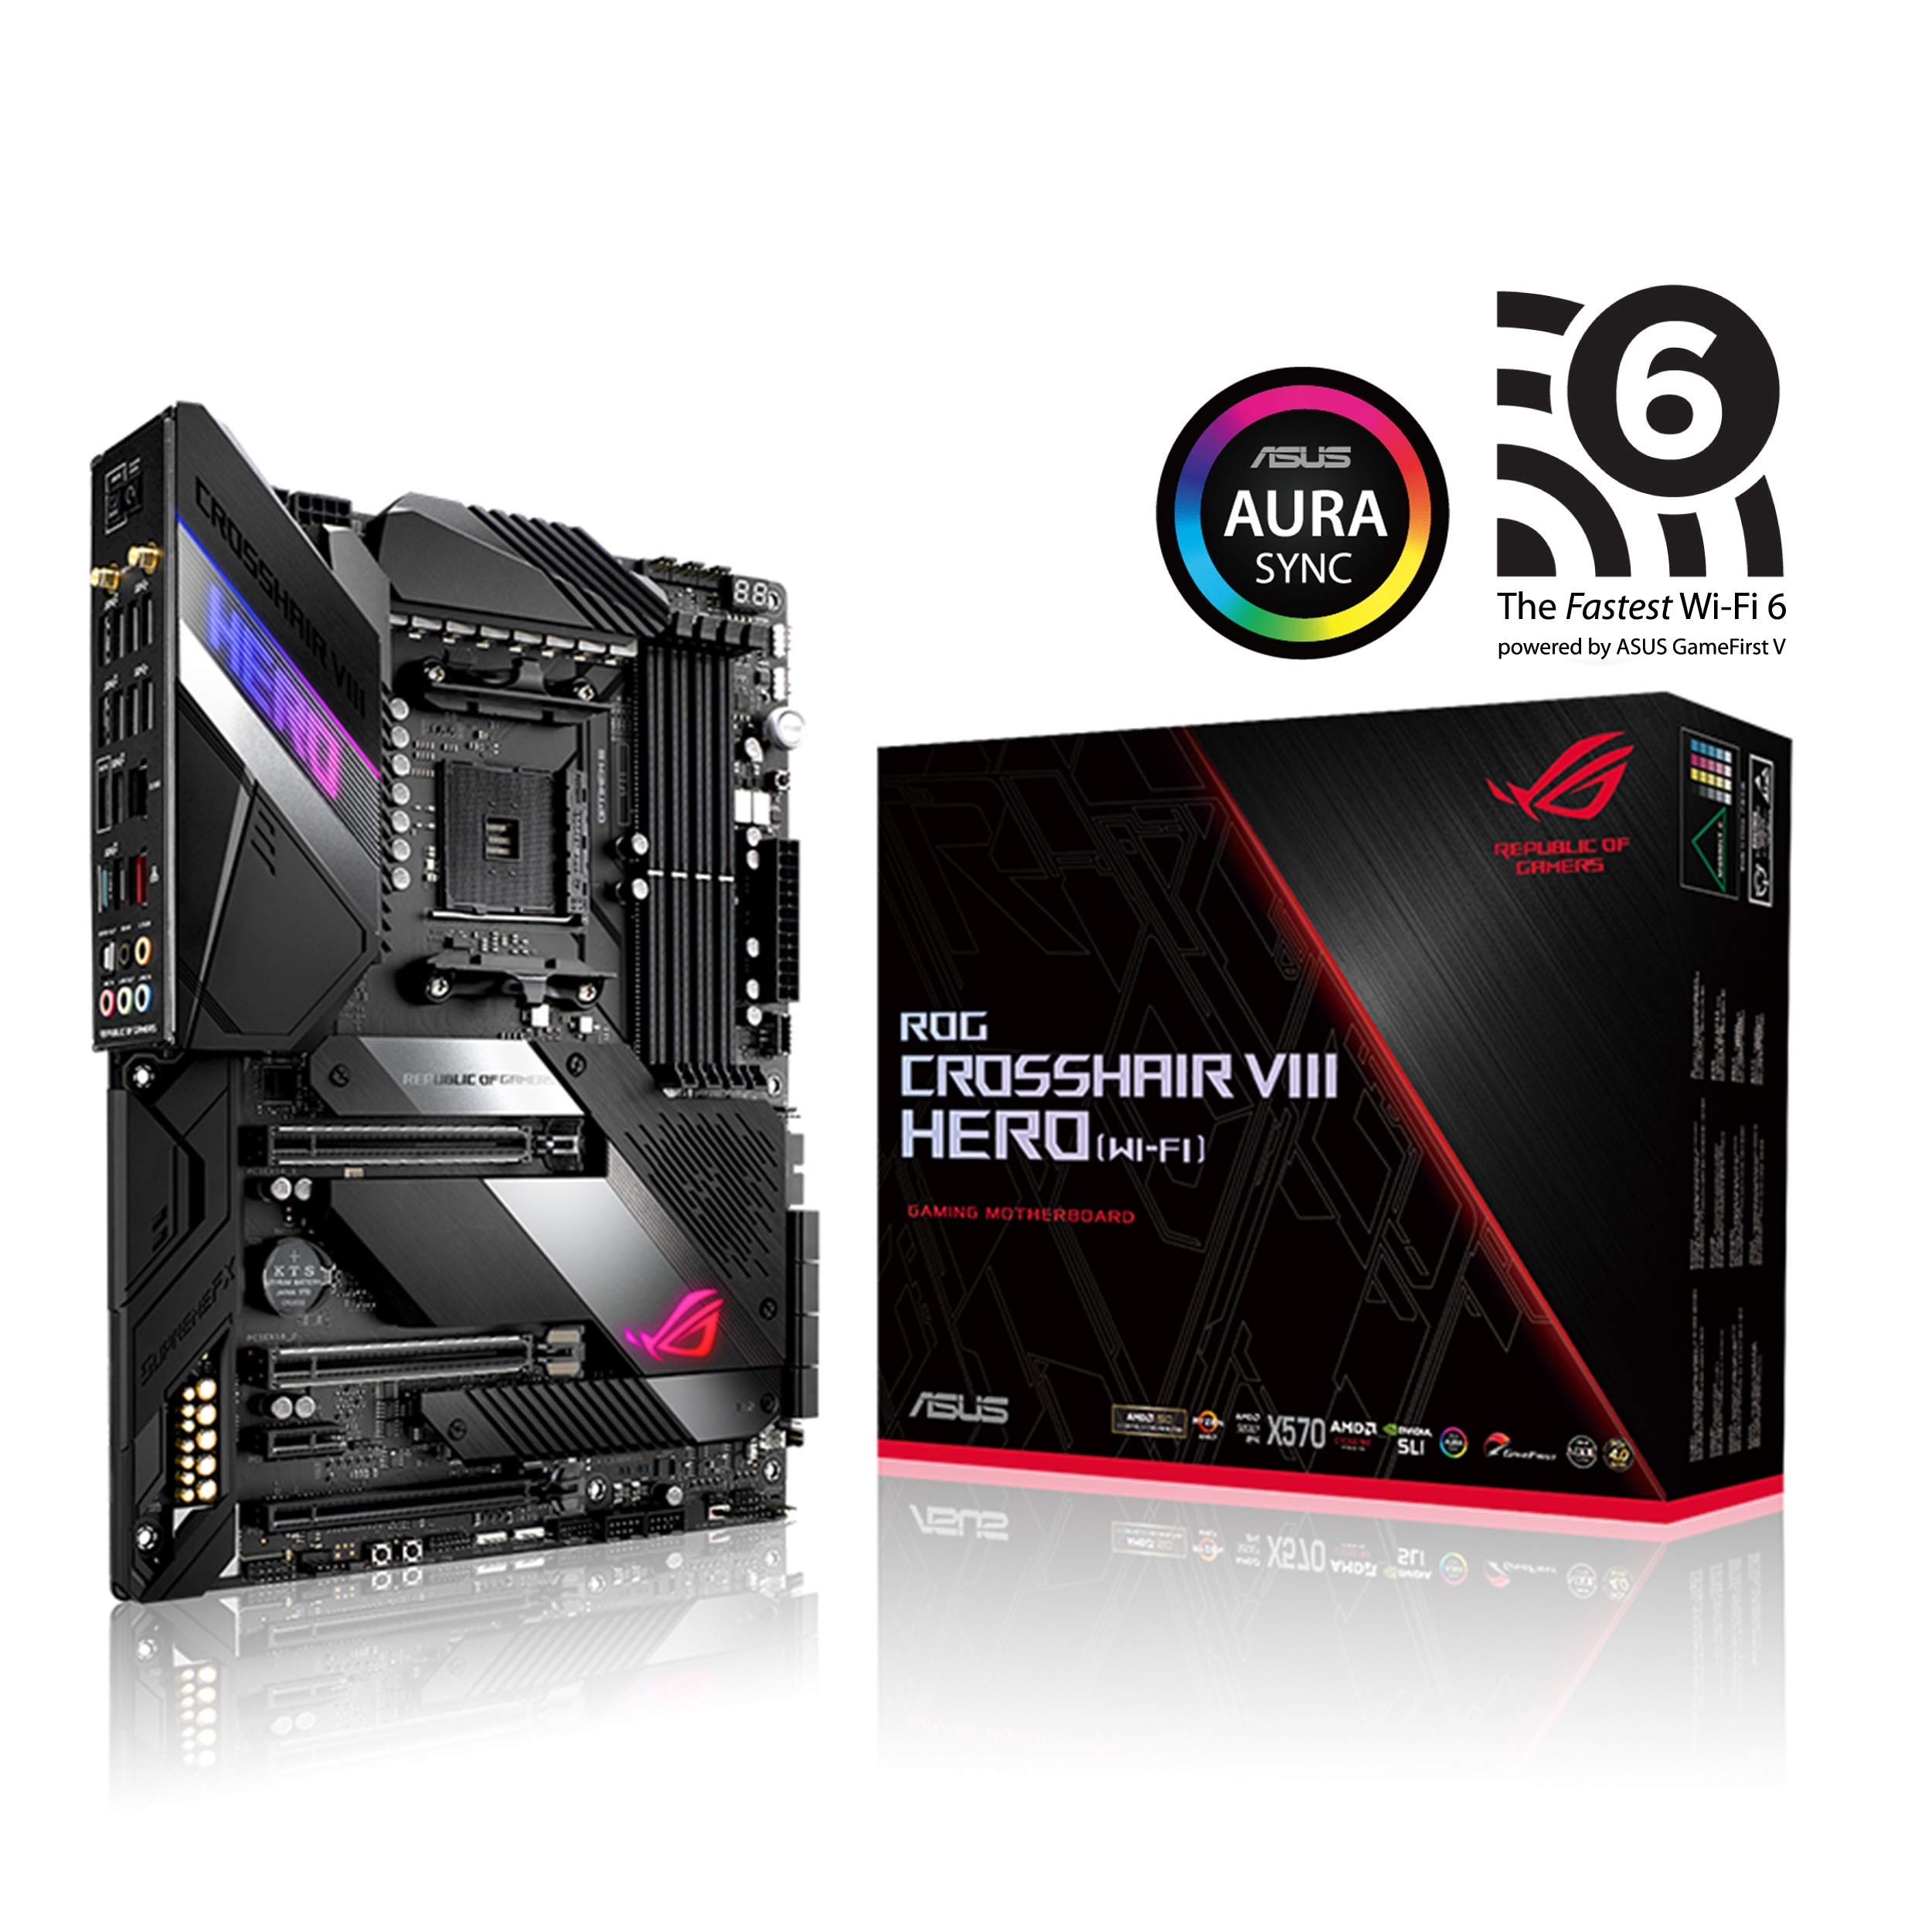 ASUS ROG X570 Crosshair VIII Hero (Wi-Fi) ATX Motherboard with PCIe 4.0, on-Board WiFi 6 (802.11Ax), 2.5 Gbps LAN, USB 3.2, SATA, M.2, Node and Aura Sync RGB Lighting by ASUS